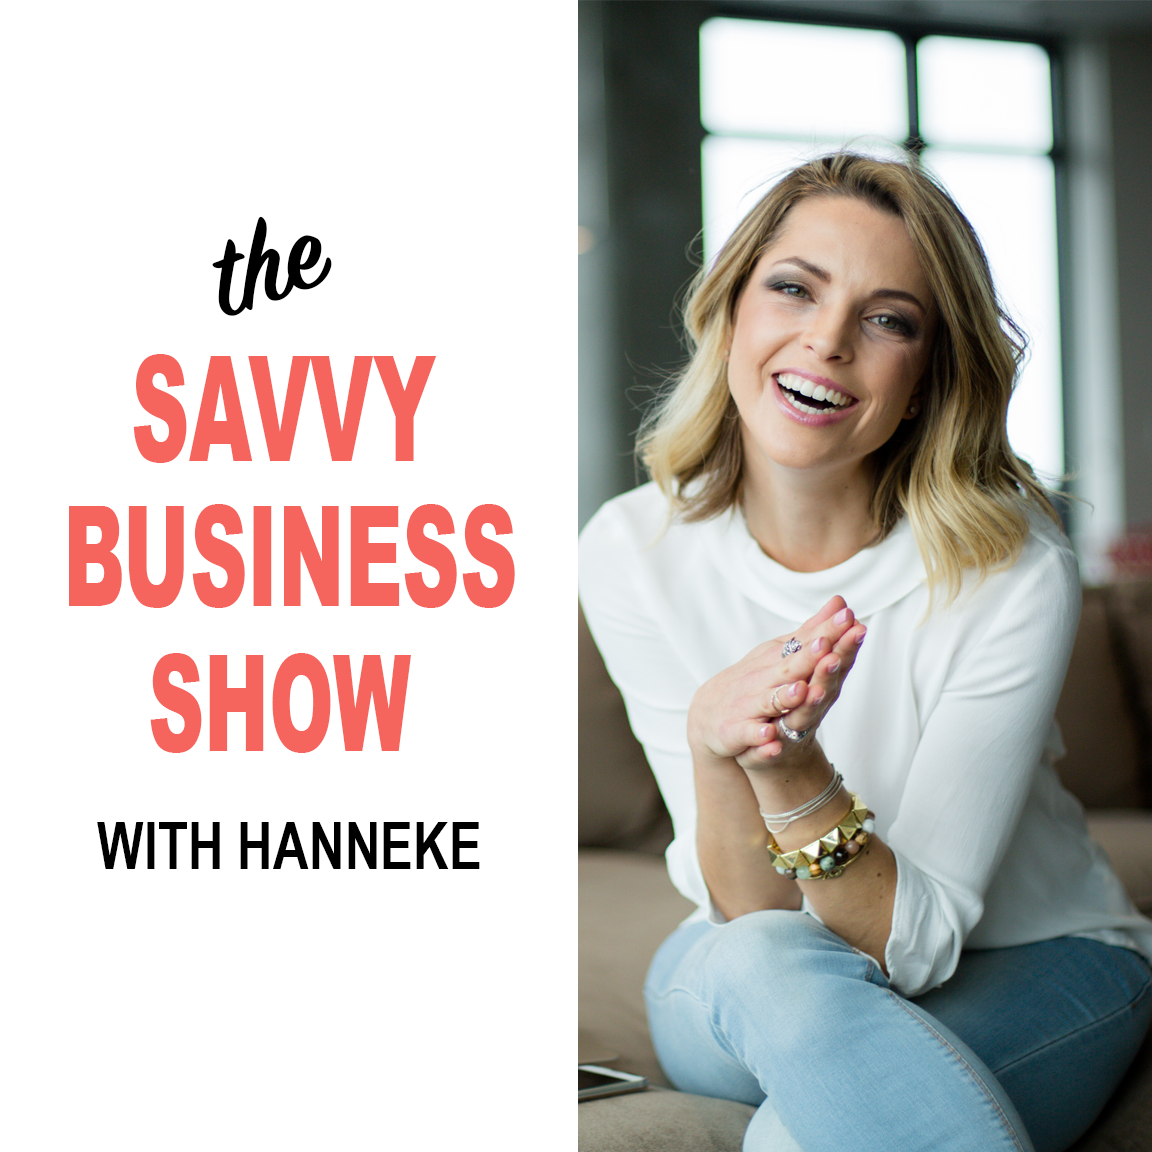 The Savvy Business Show show art